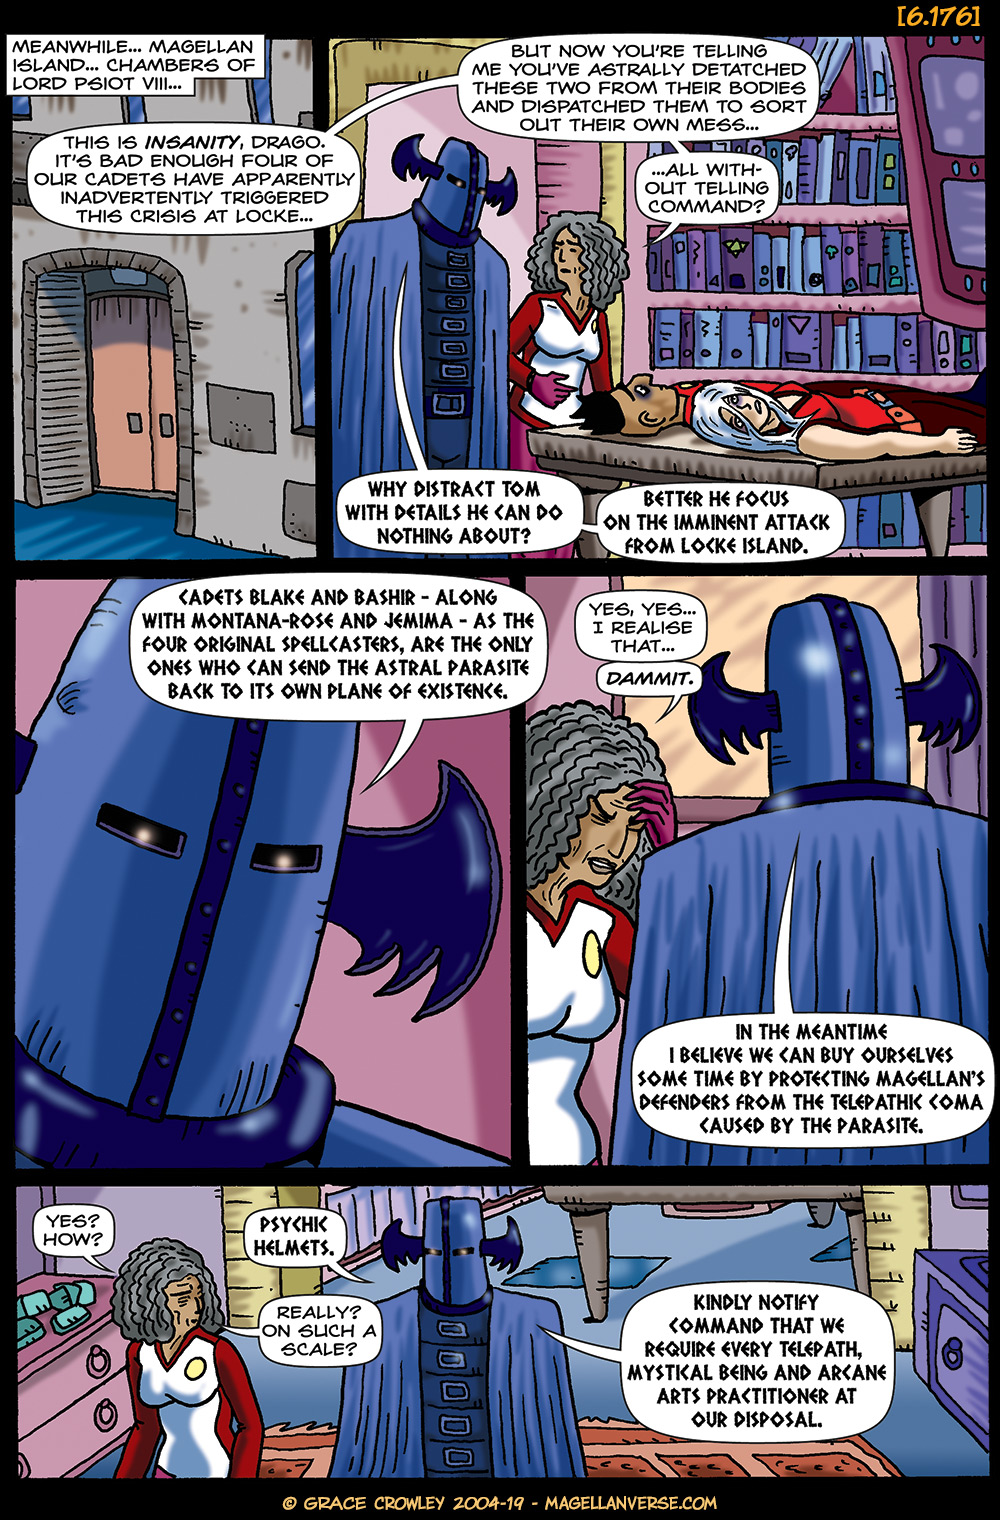 Page 6.176